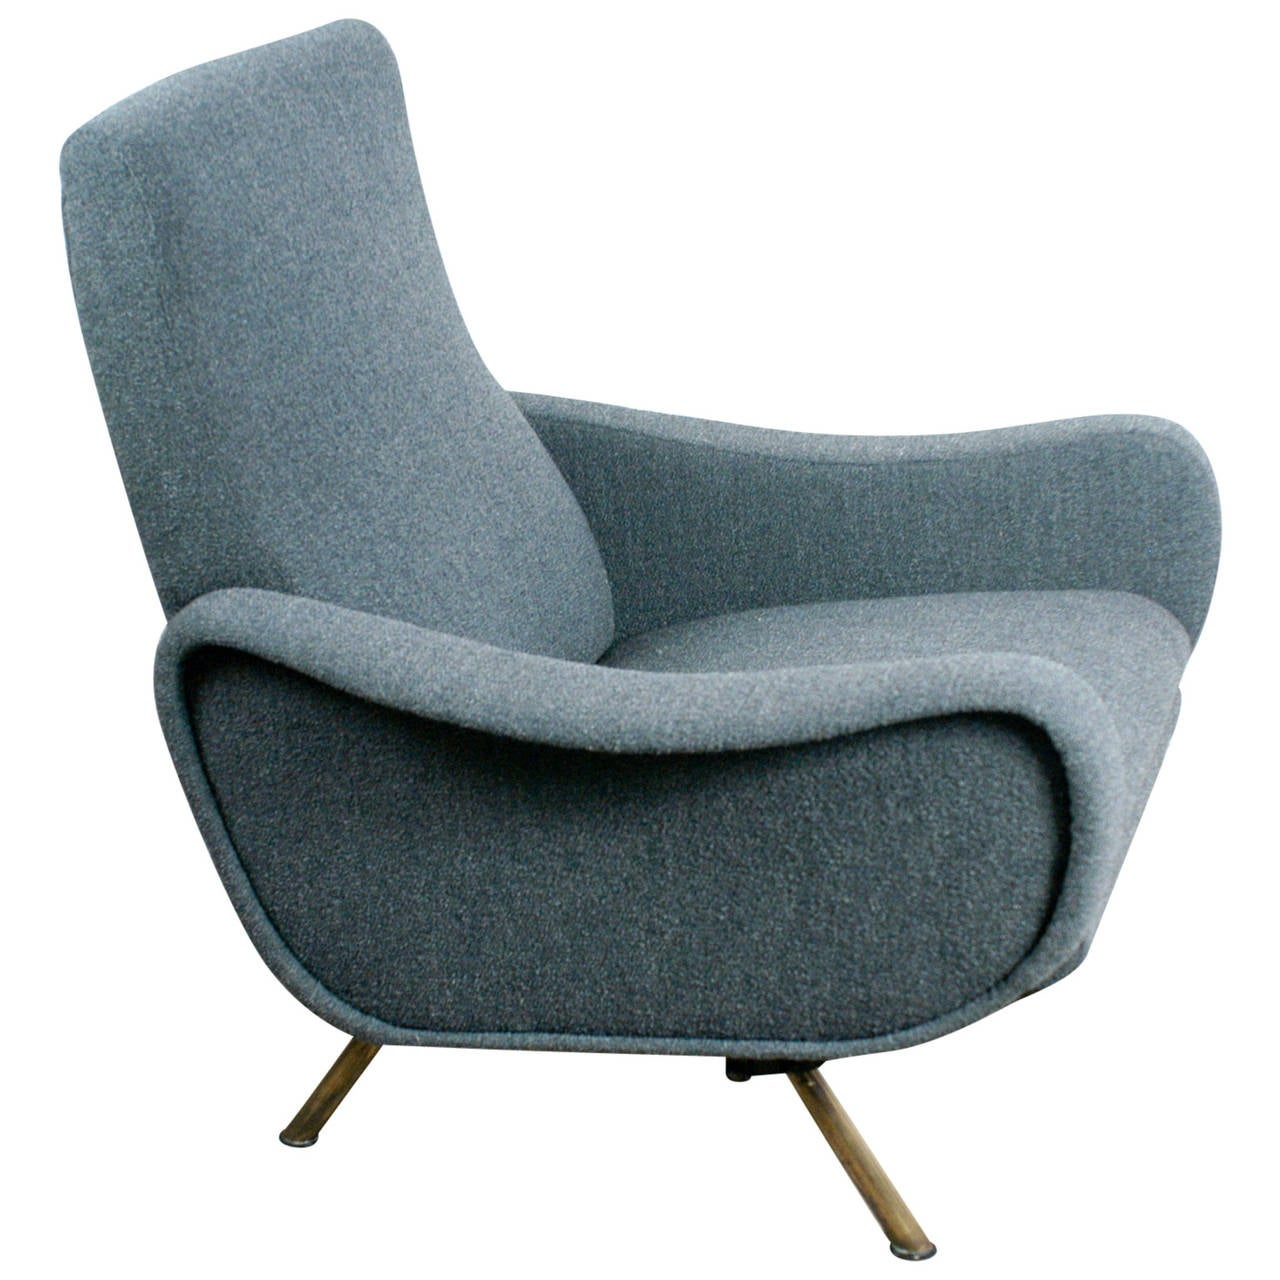 Lady chair with reclinig function by marco zanuso at 1stdibs for Function chairs